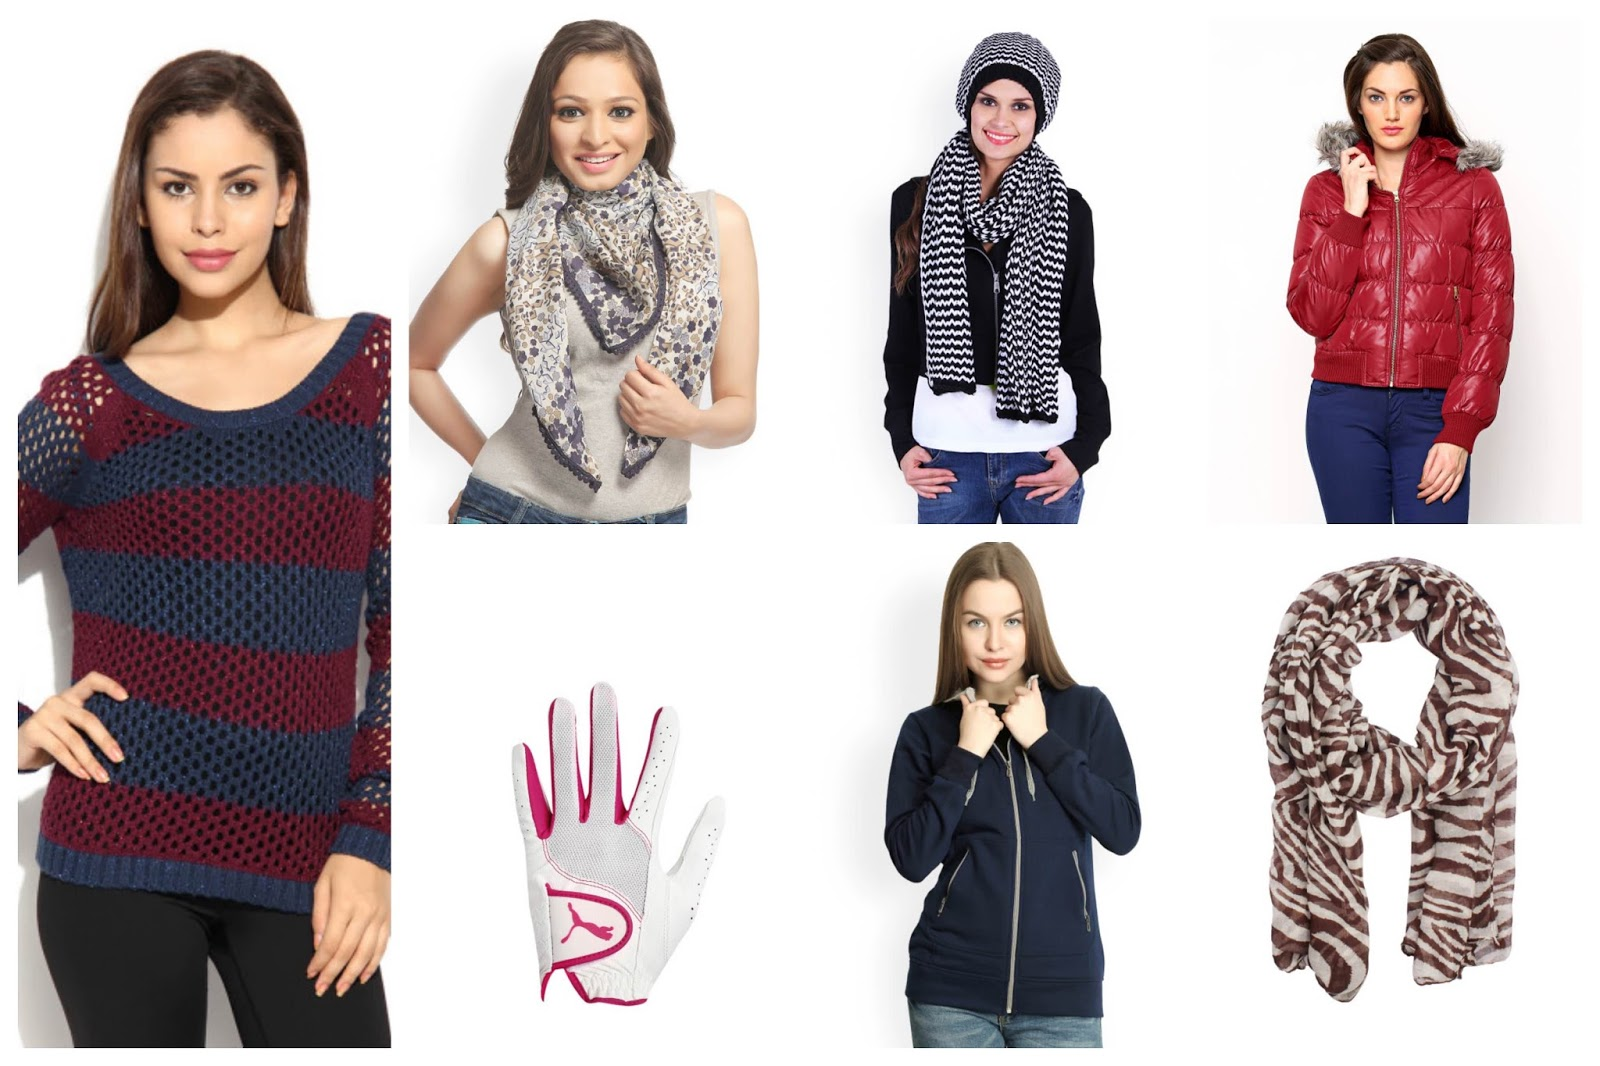 c750c461b156d If you haven't already planned your winter wear essentials, here is the  list of basic winter wear to keep you warm and comfortable in the cold  weather.